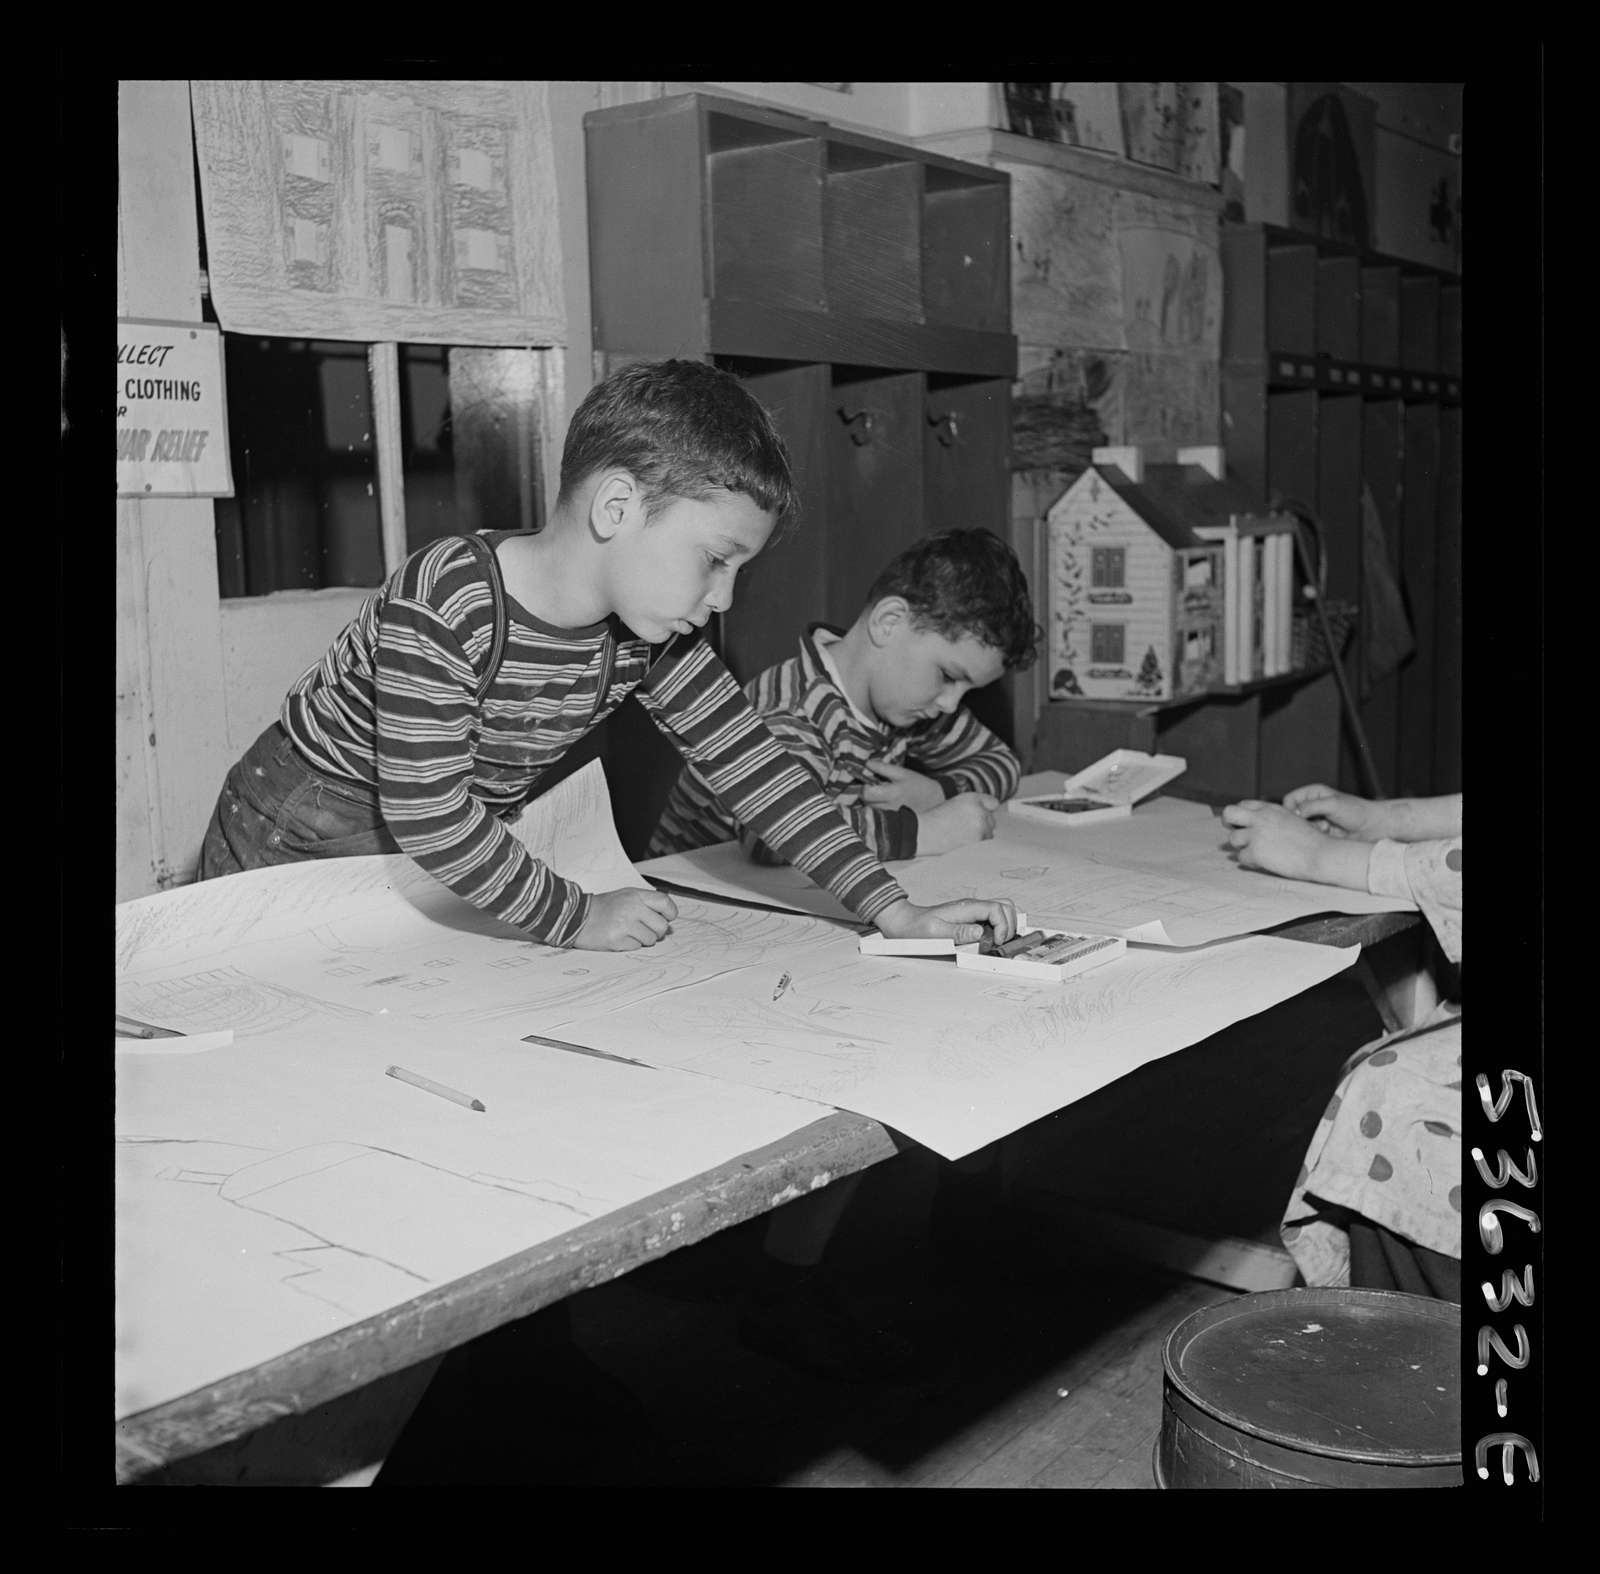 New York, New York. Two young boys, sons of working mothers, making drawings at Greenwich House, a community center where they are receiving day care